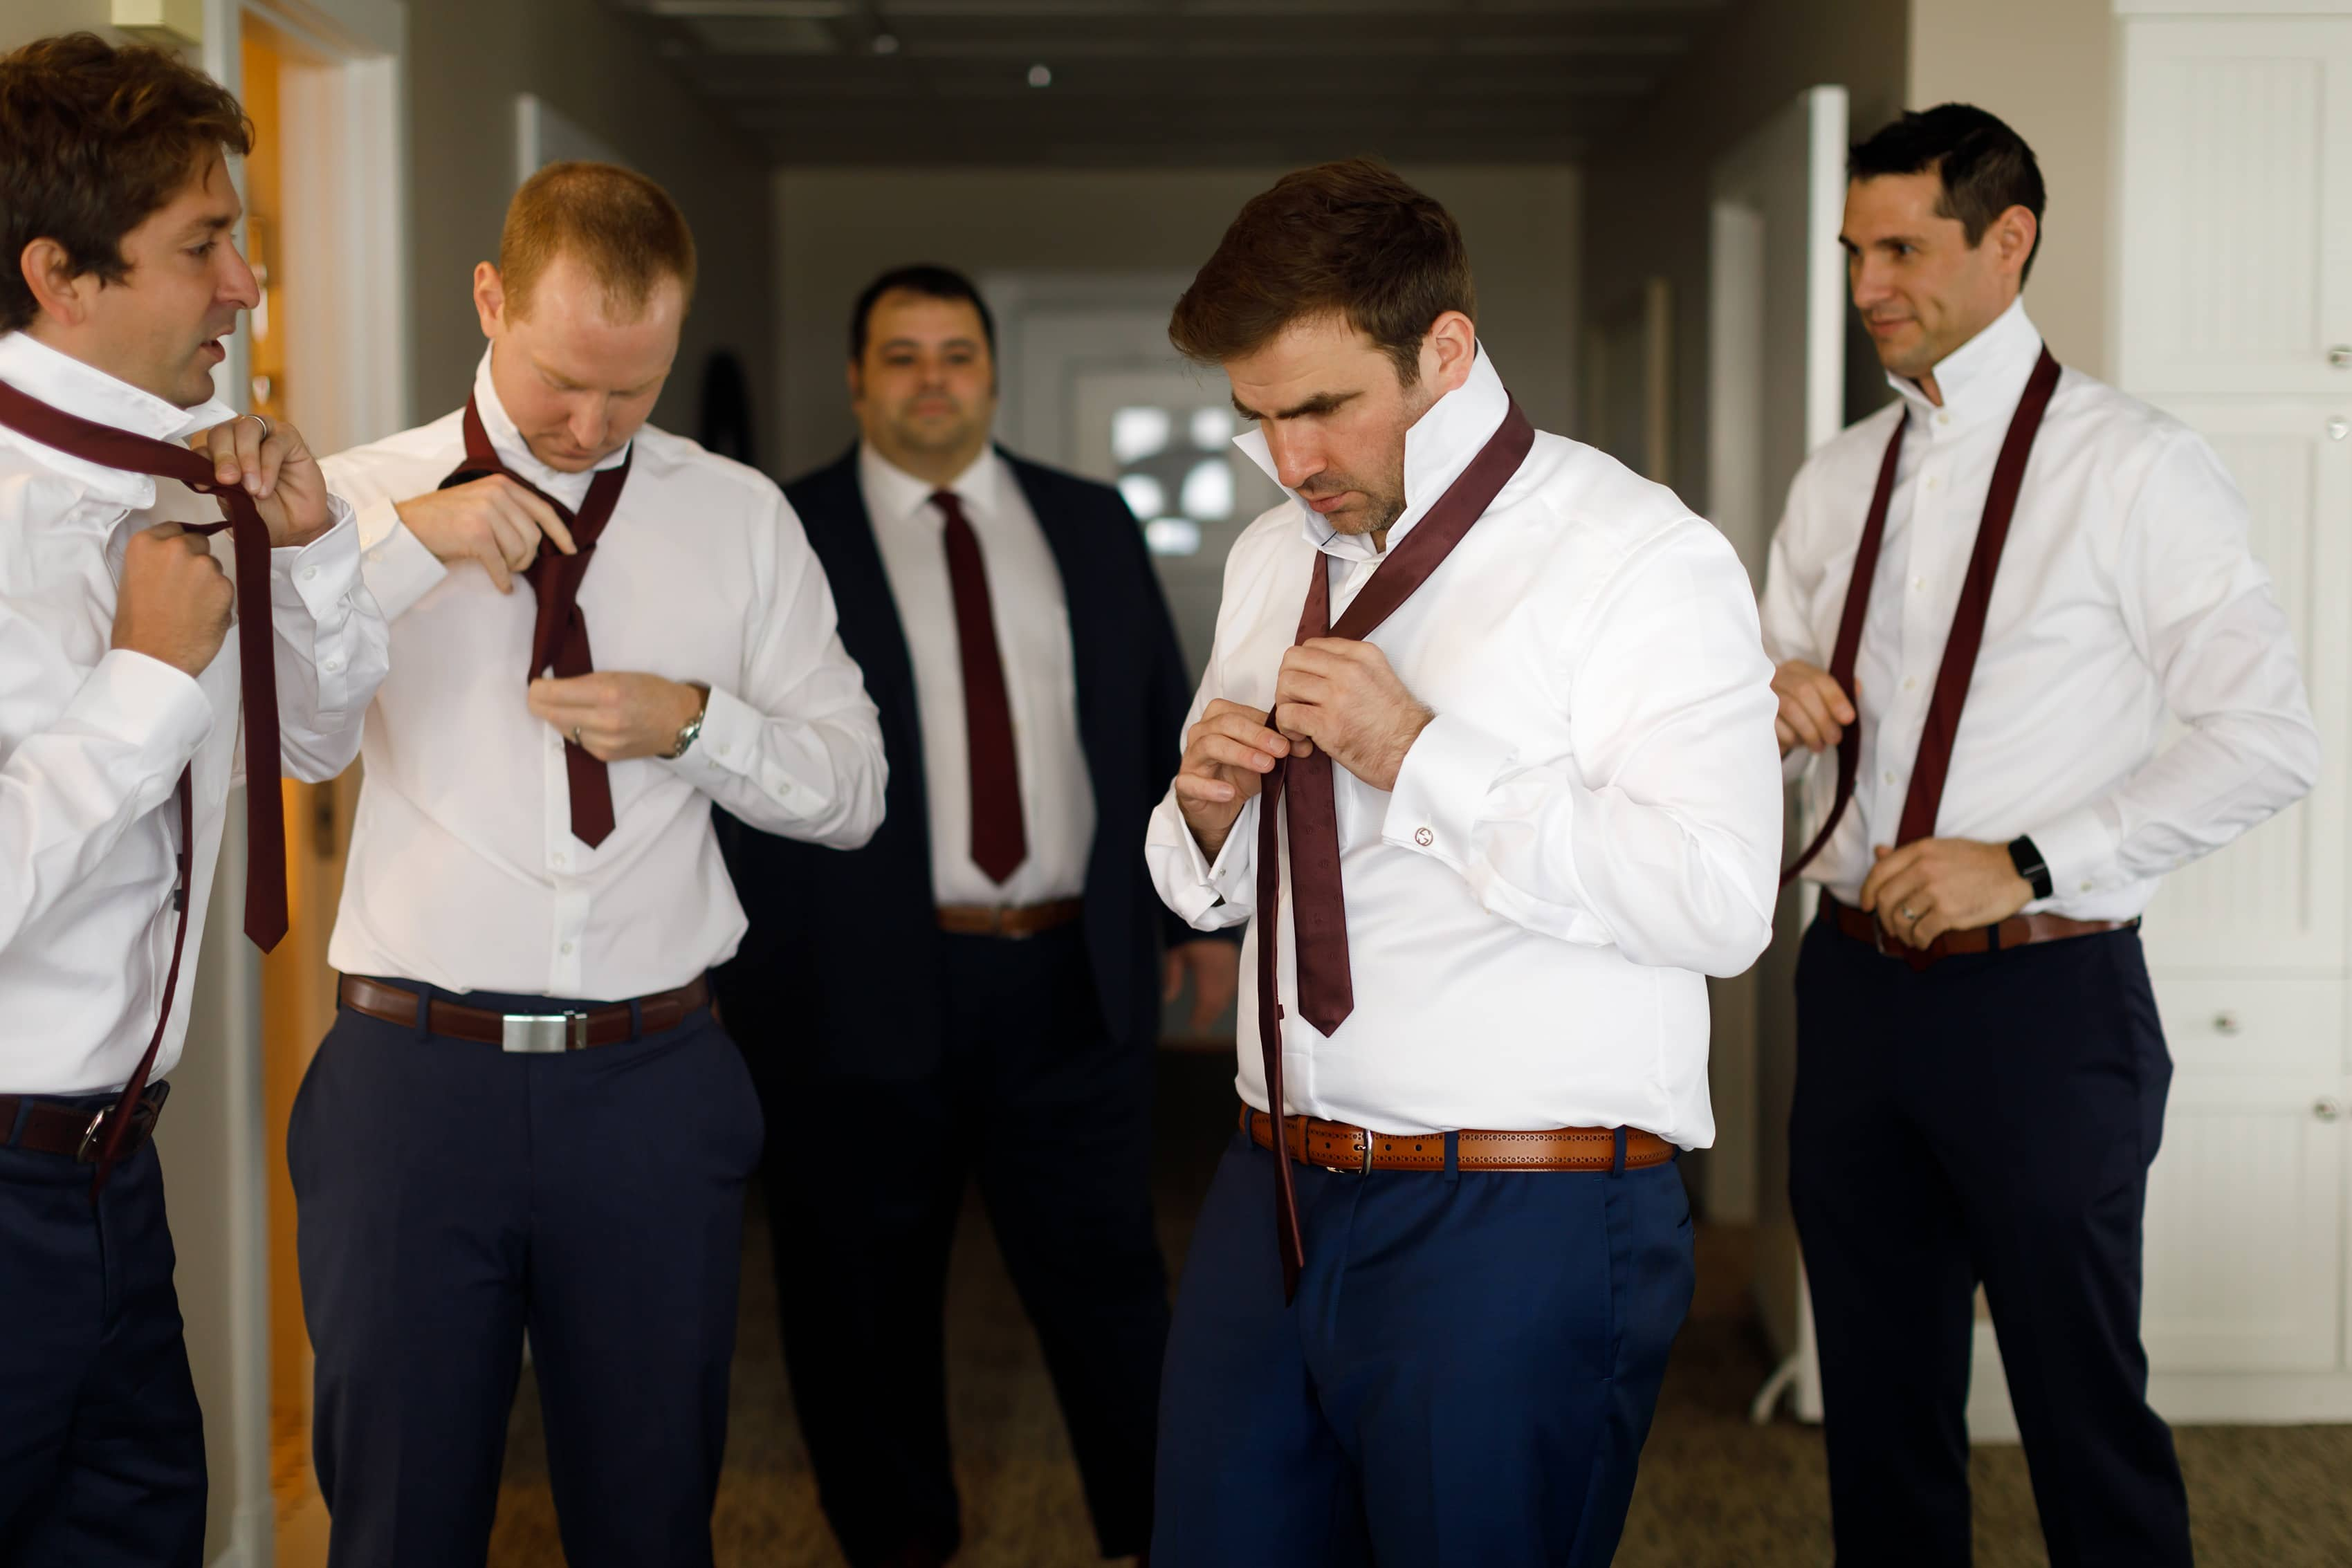 groom and groomsmen put on ties while getting ready for wedding